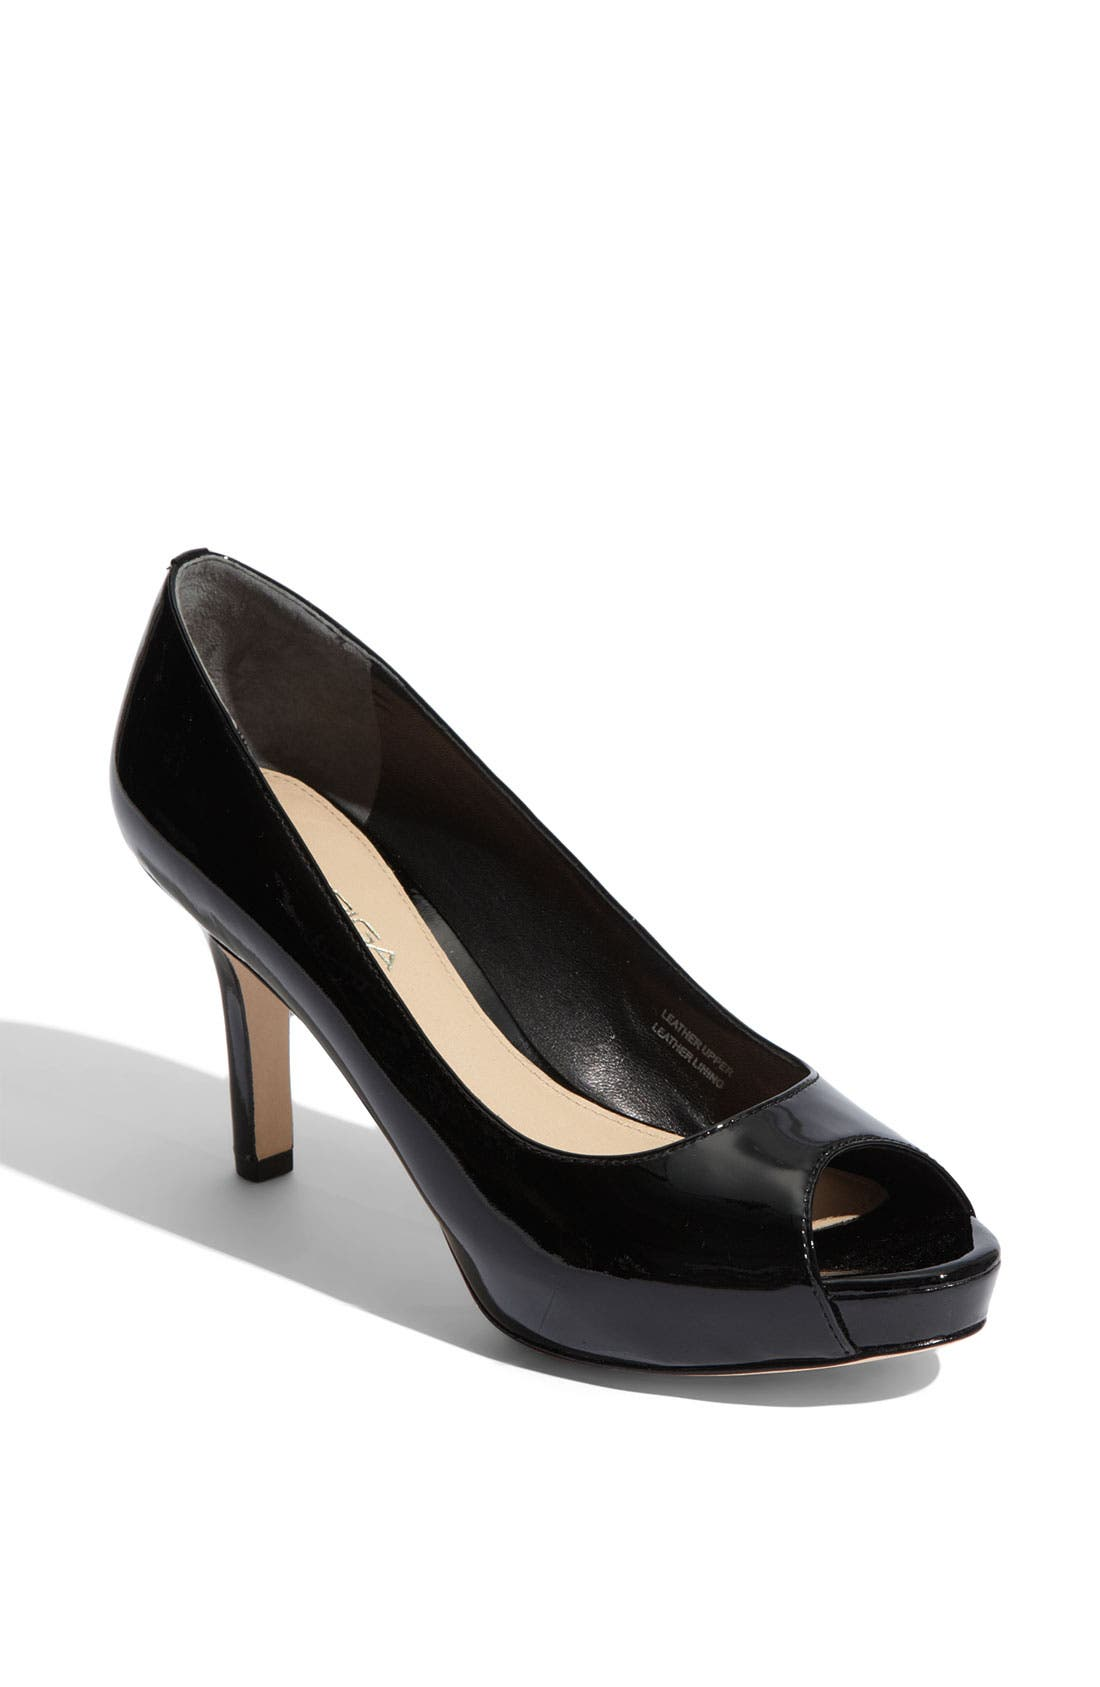 Main Image - Via Spiga 'Ryan' Pump